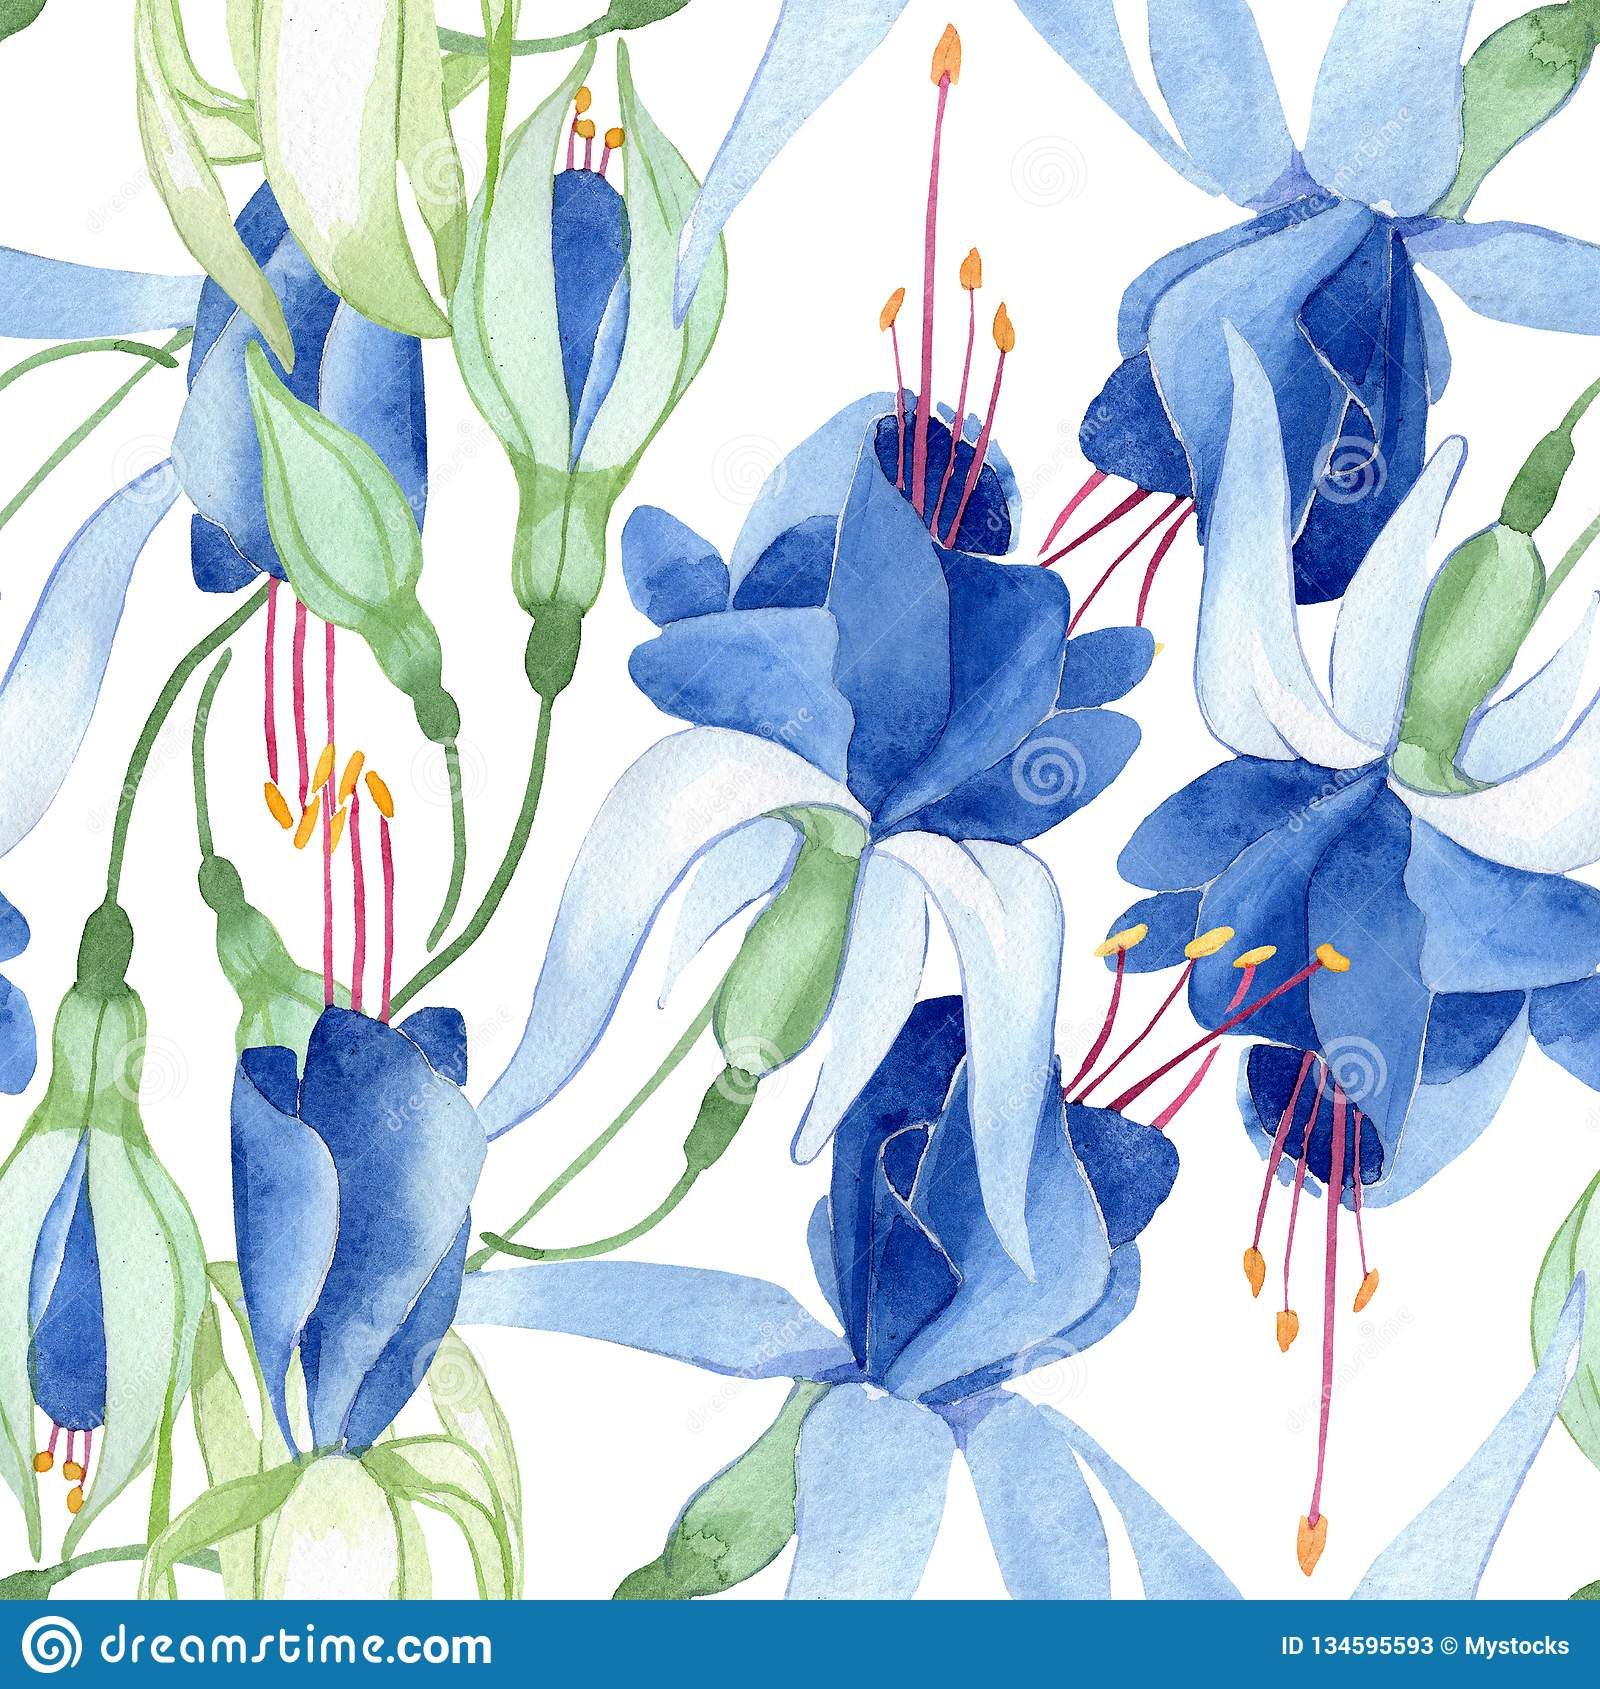 Blue fuchsia. Floral botanical flower. Watercolour drawing fashion aquarelle isolated. Seamless background pattern.